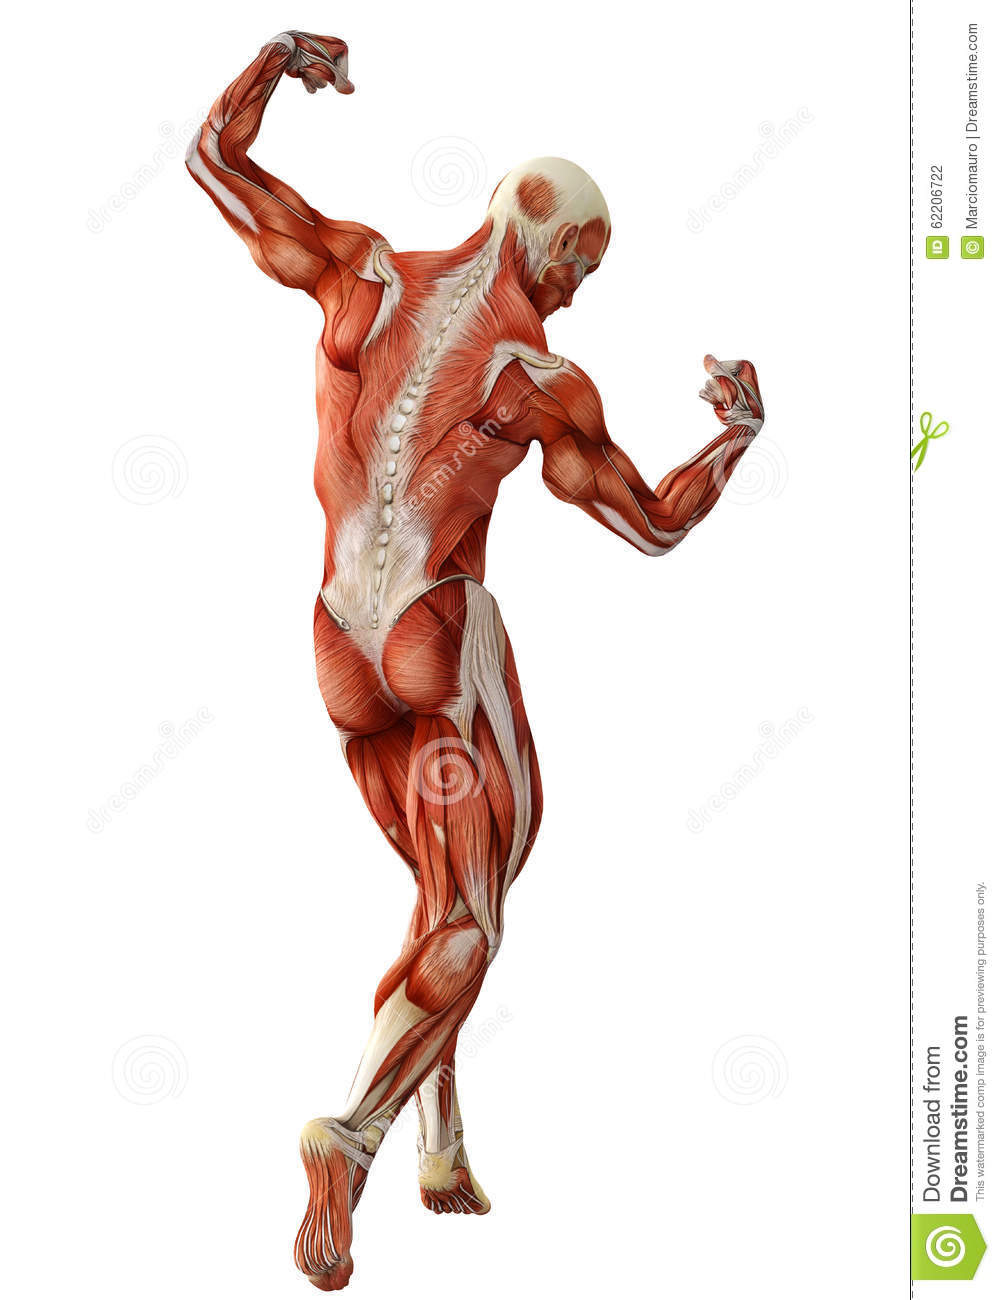 muscle man back view stock illustration - image: 62206722, Muscles